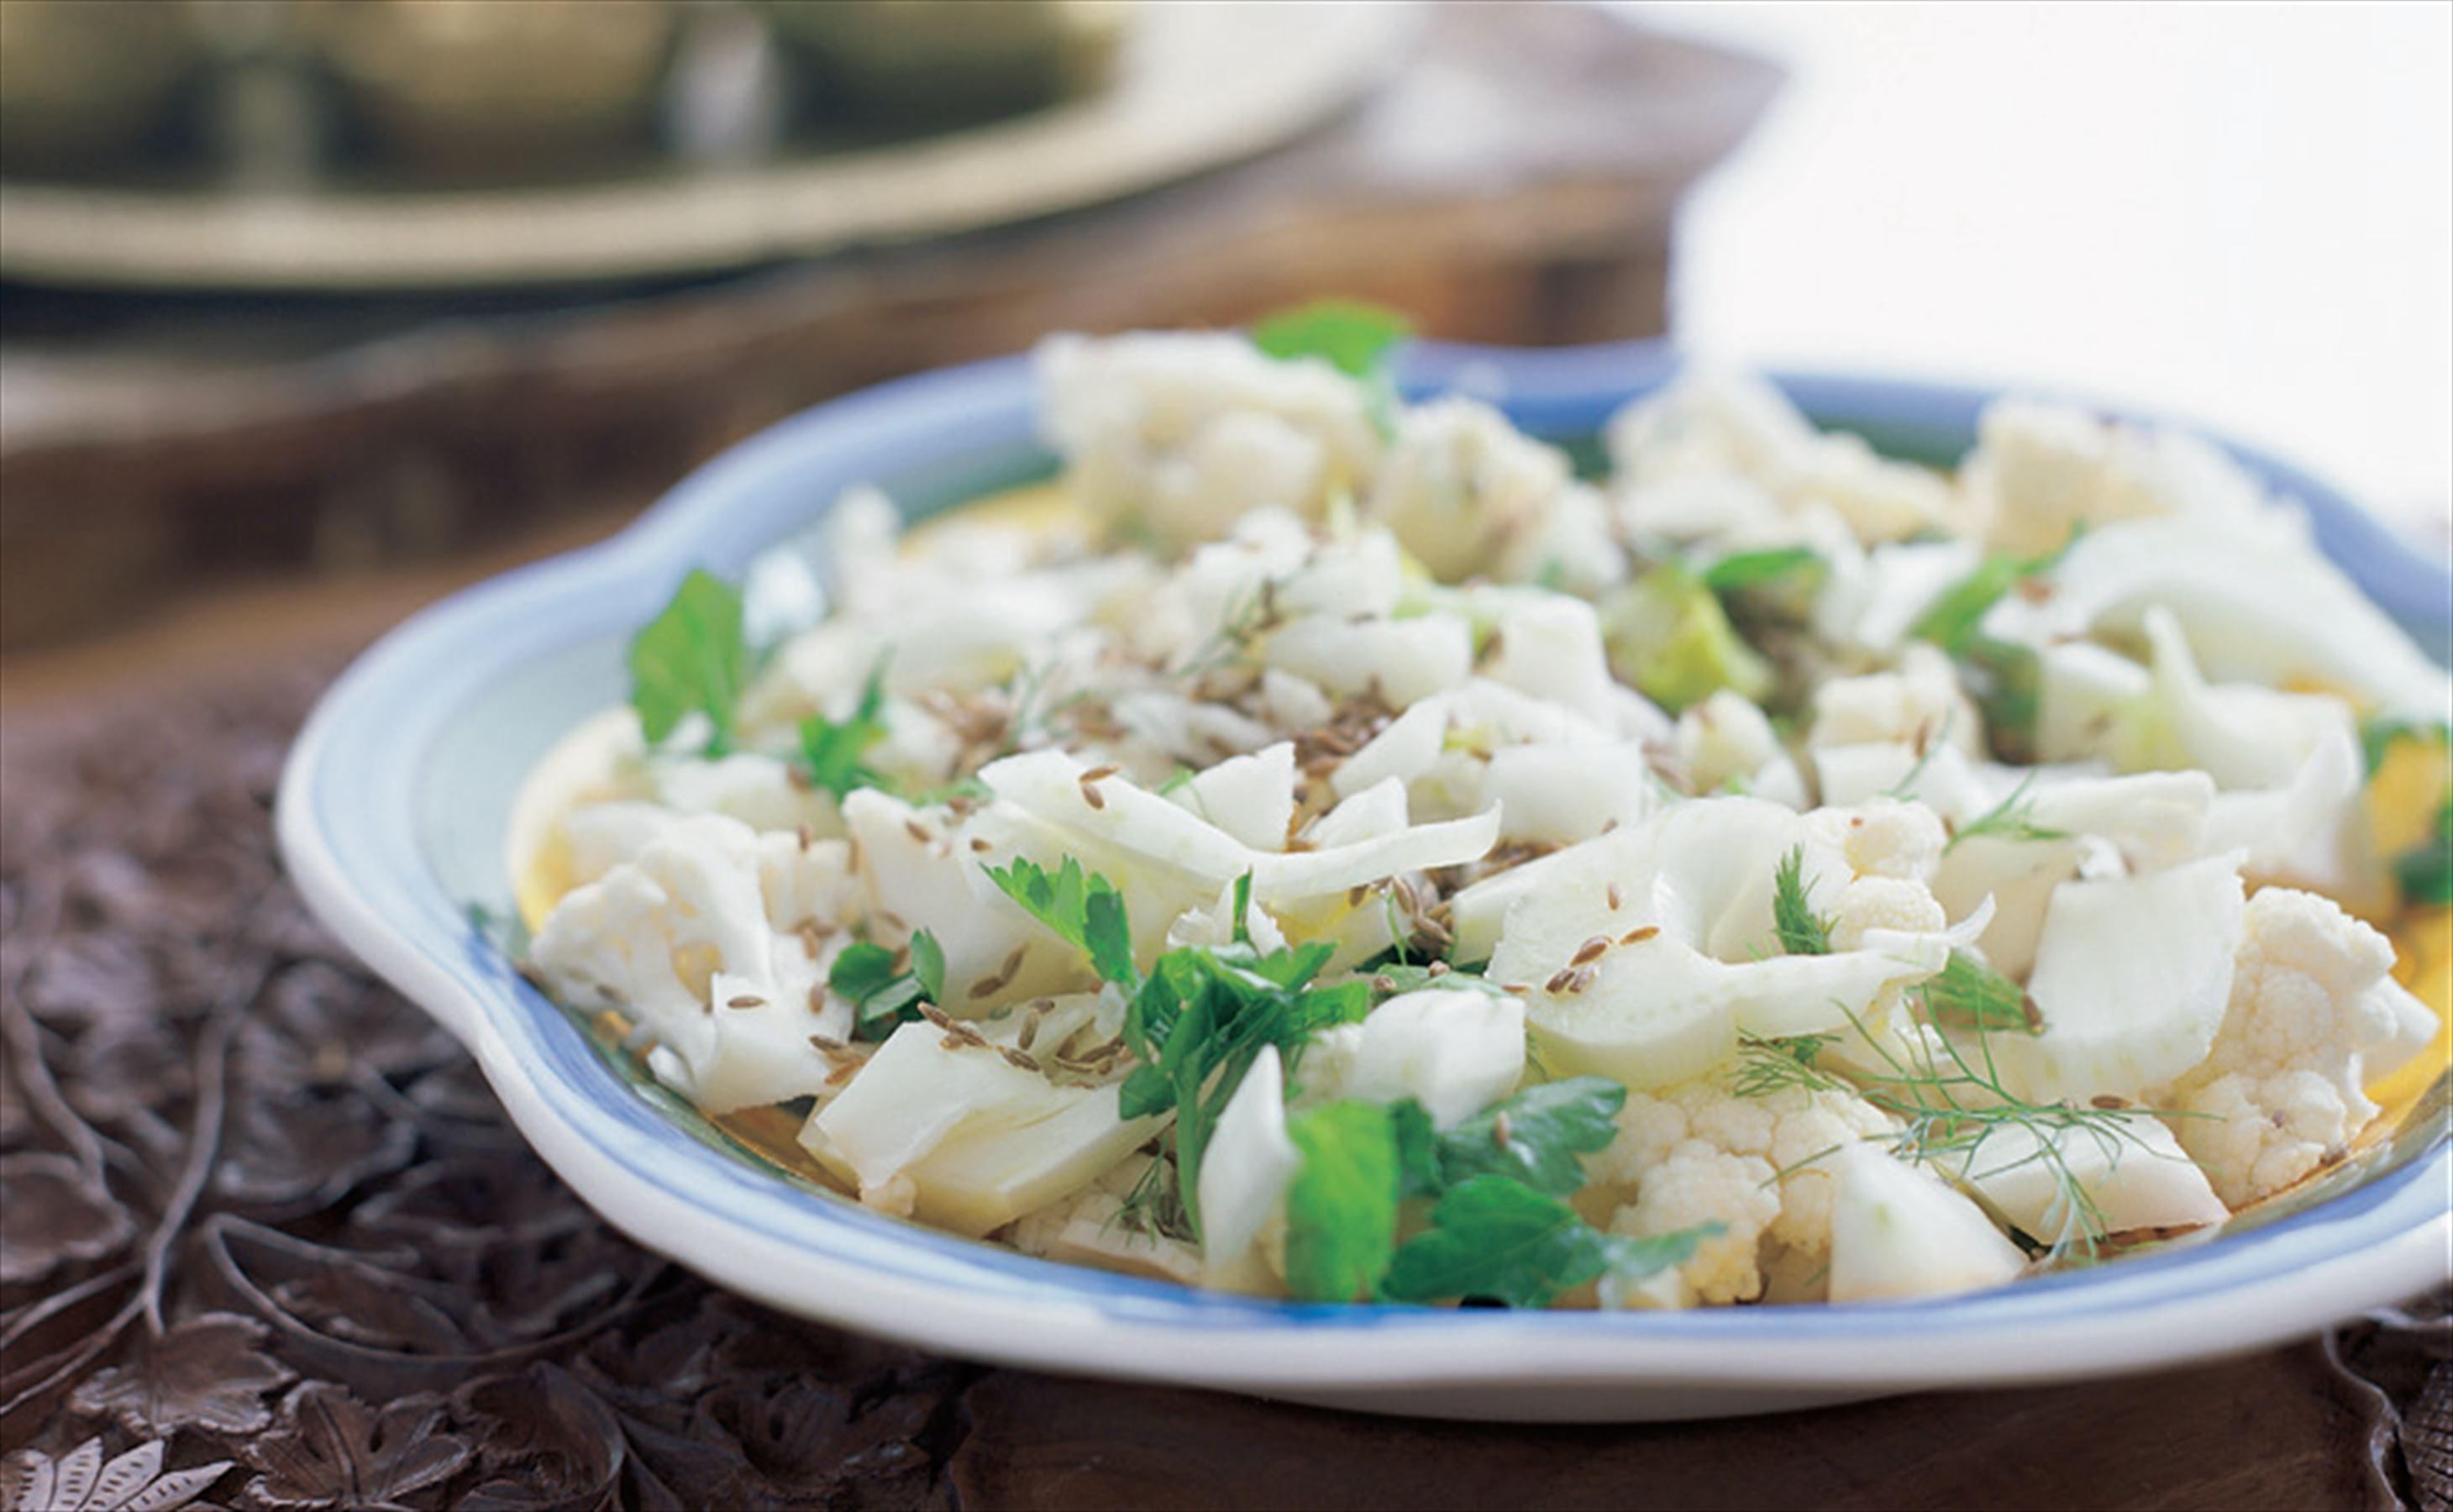 Cauliflower and aniseed (fennel) salad